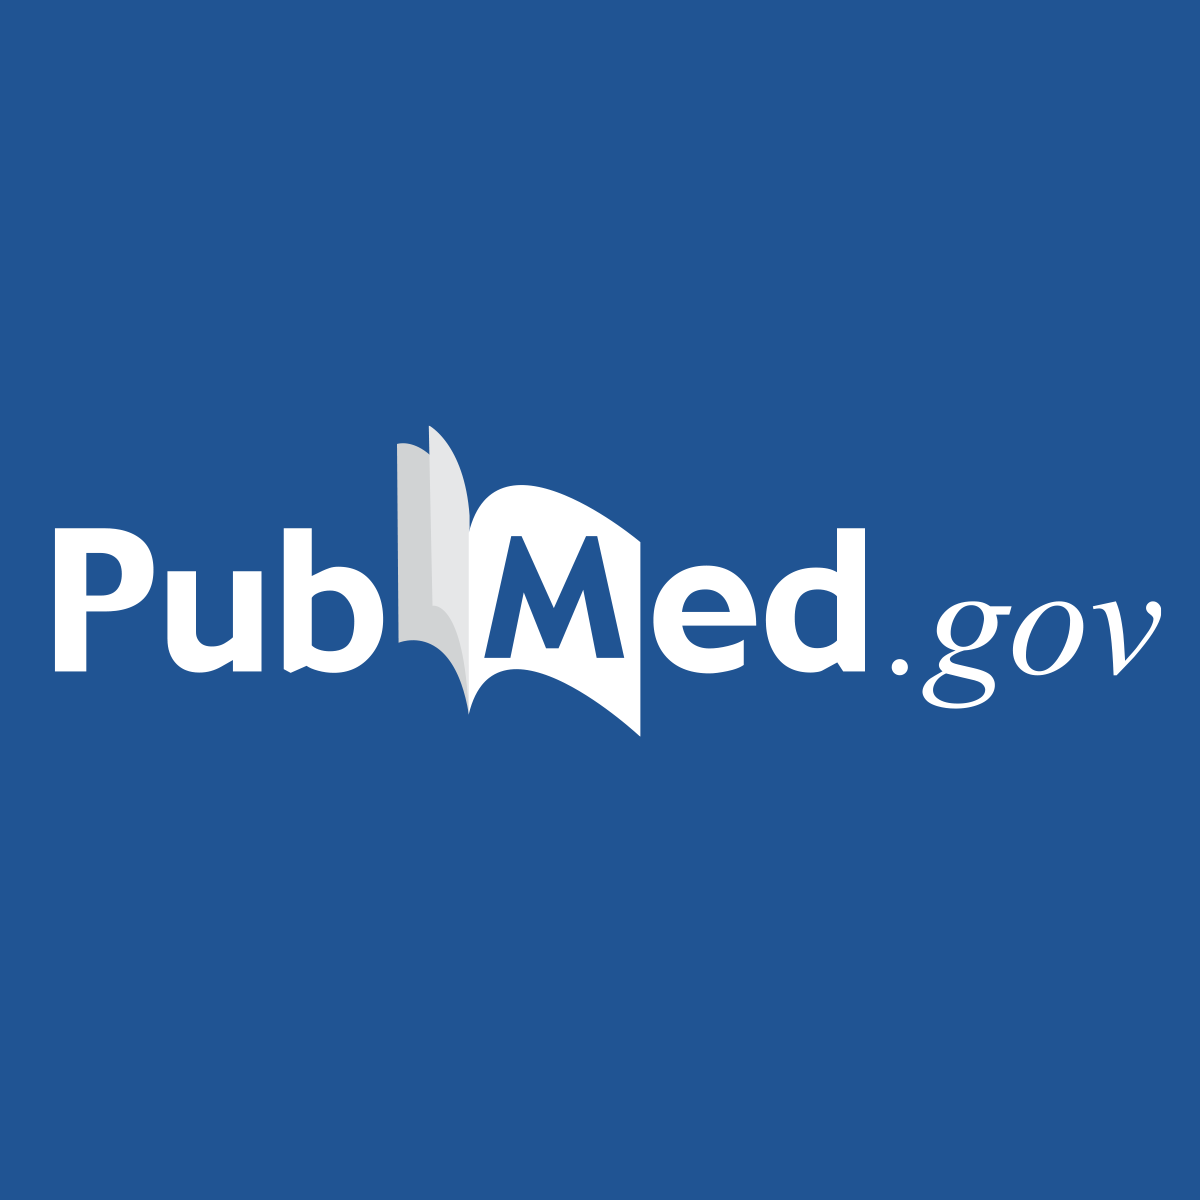 Nuclear magnetic resonance reveals postprandial low-density lipoprotein cholesterol determined by enzymatic method could be a misleading indicator - PubMed